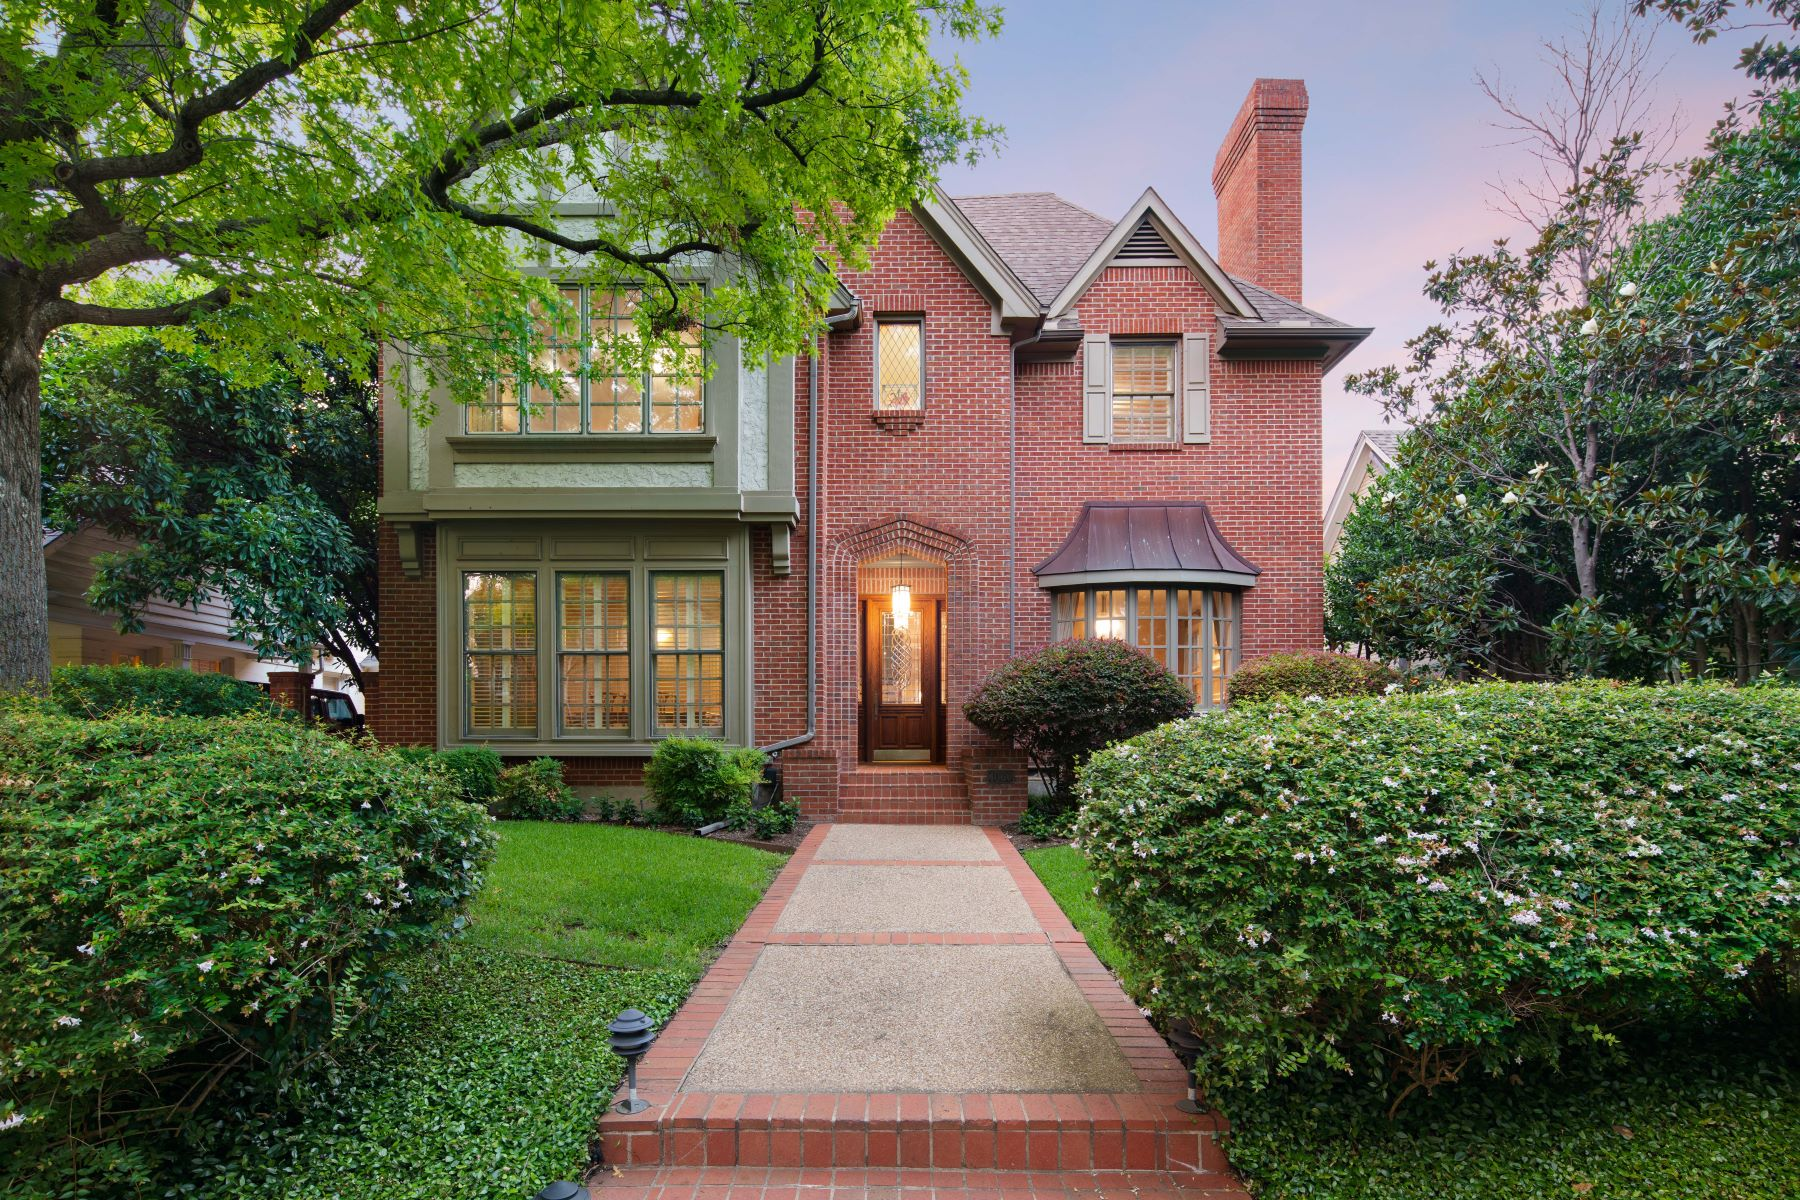 Single Family Homes for Sale at Stunning Traditional in University Park 4060 Amherst Avenue University Park, Texas 75225 United States